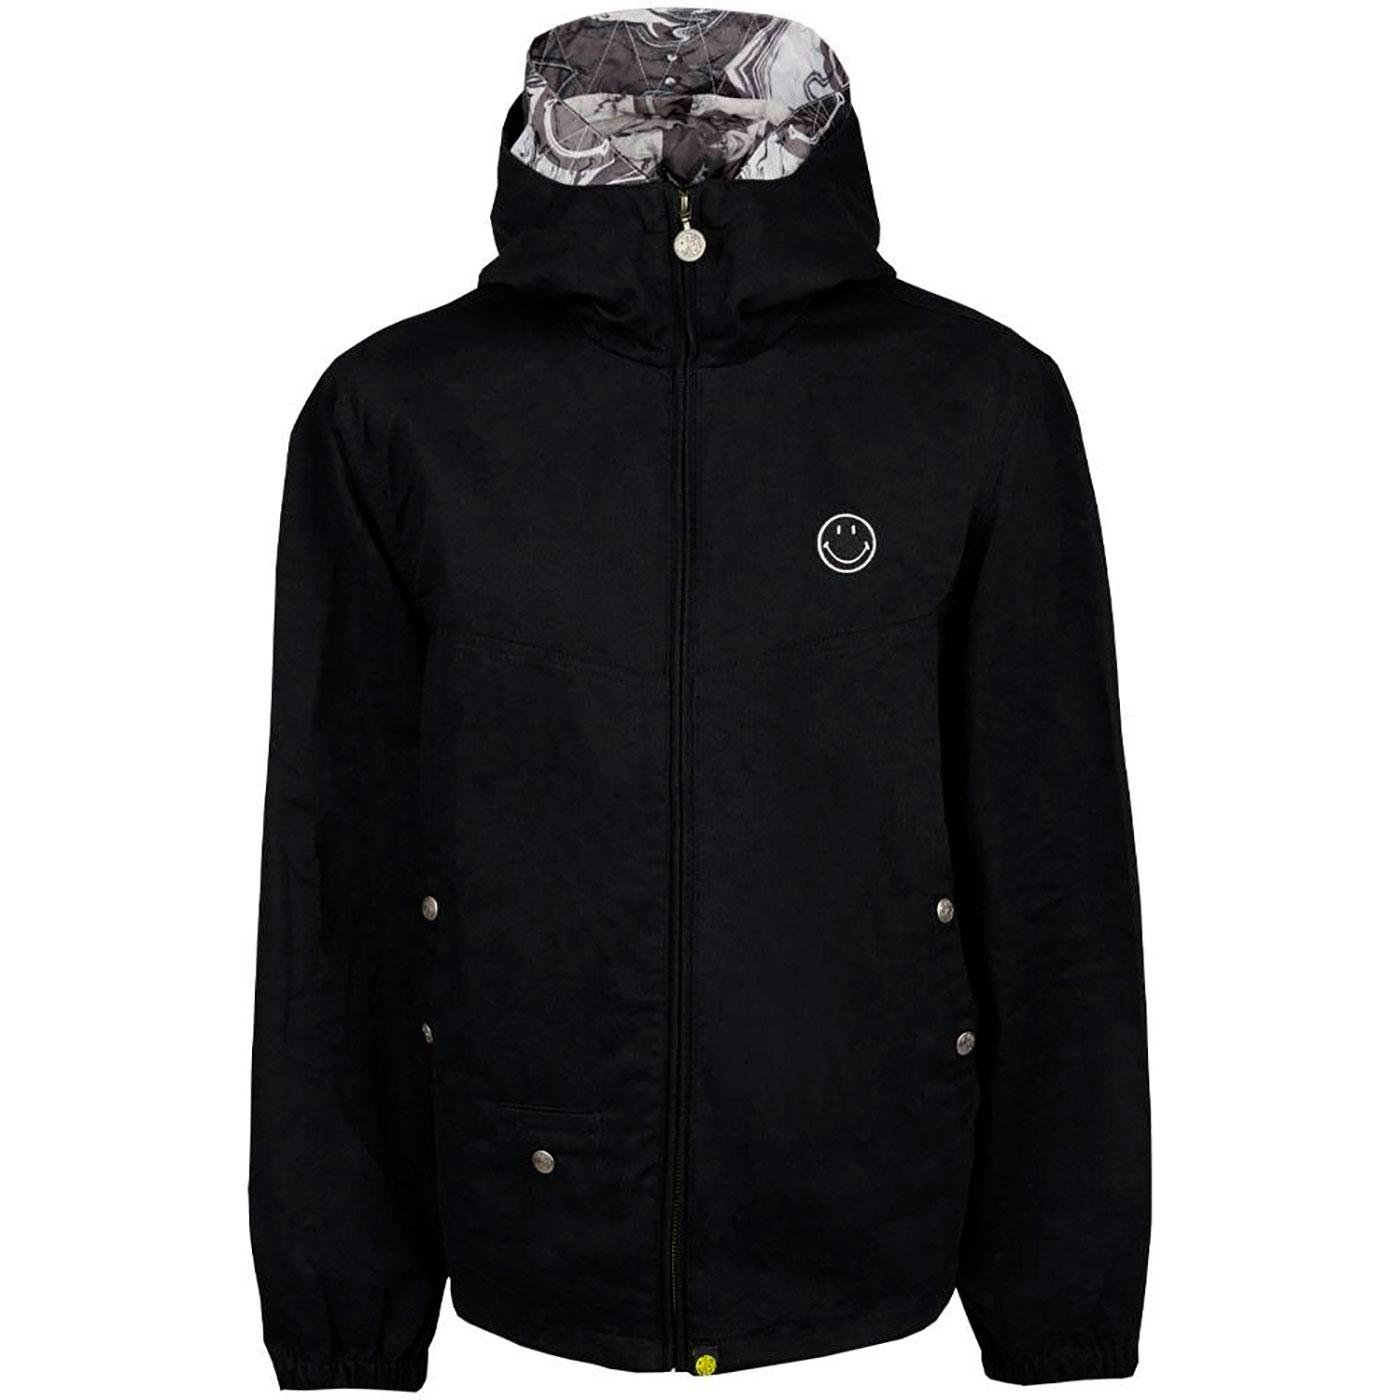 PRETTY GREEN X SMILEY® Retro 90's Hooded Jacket